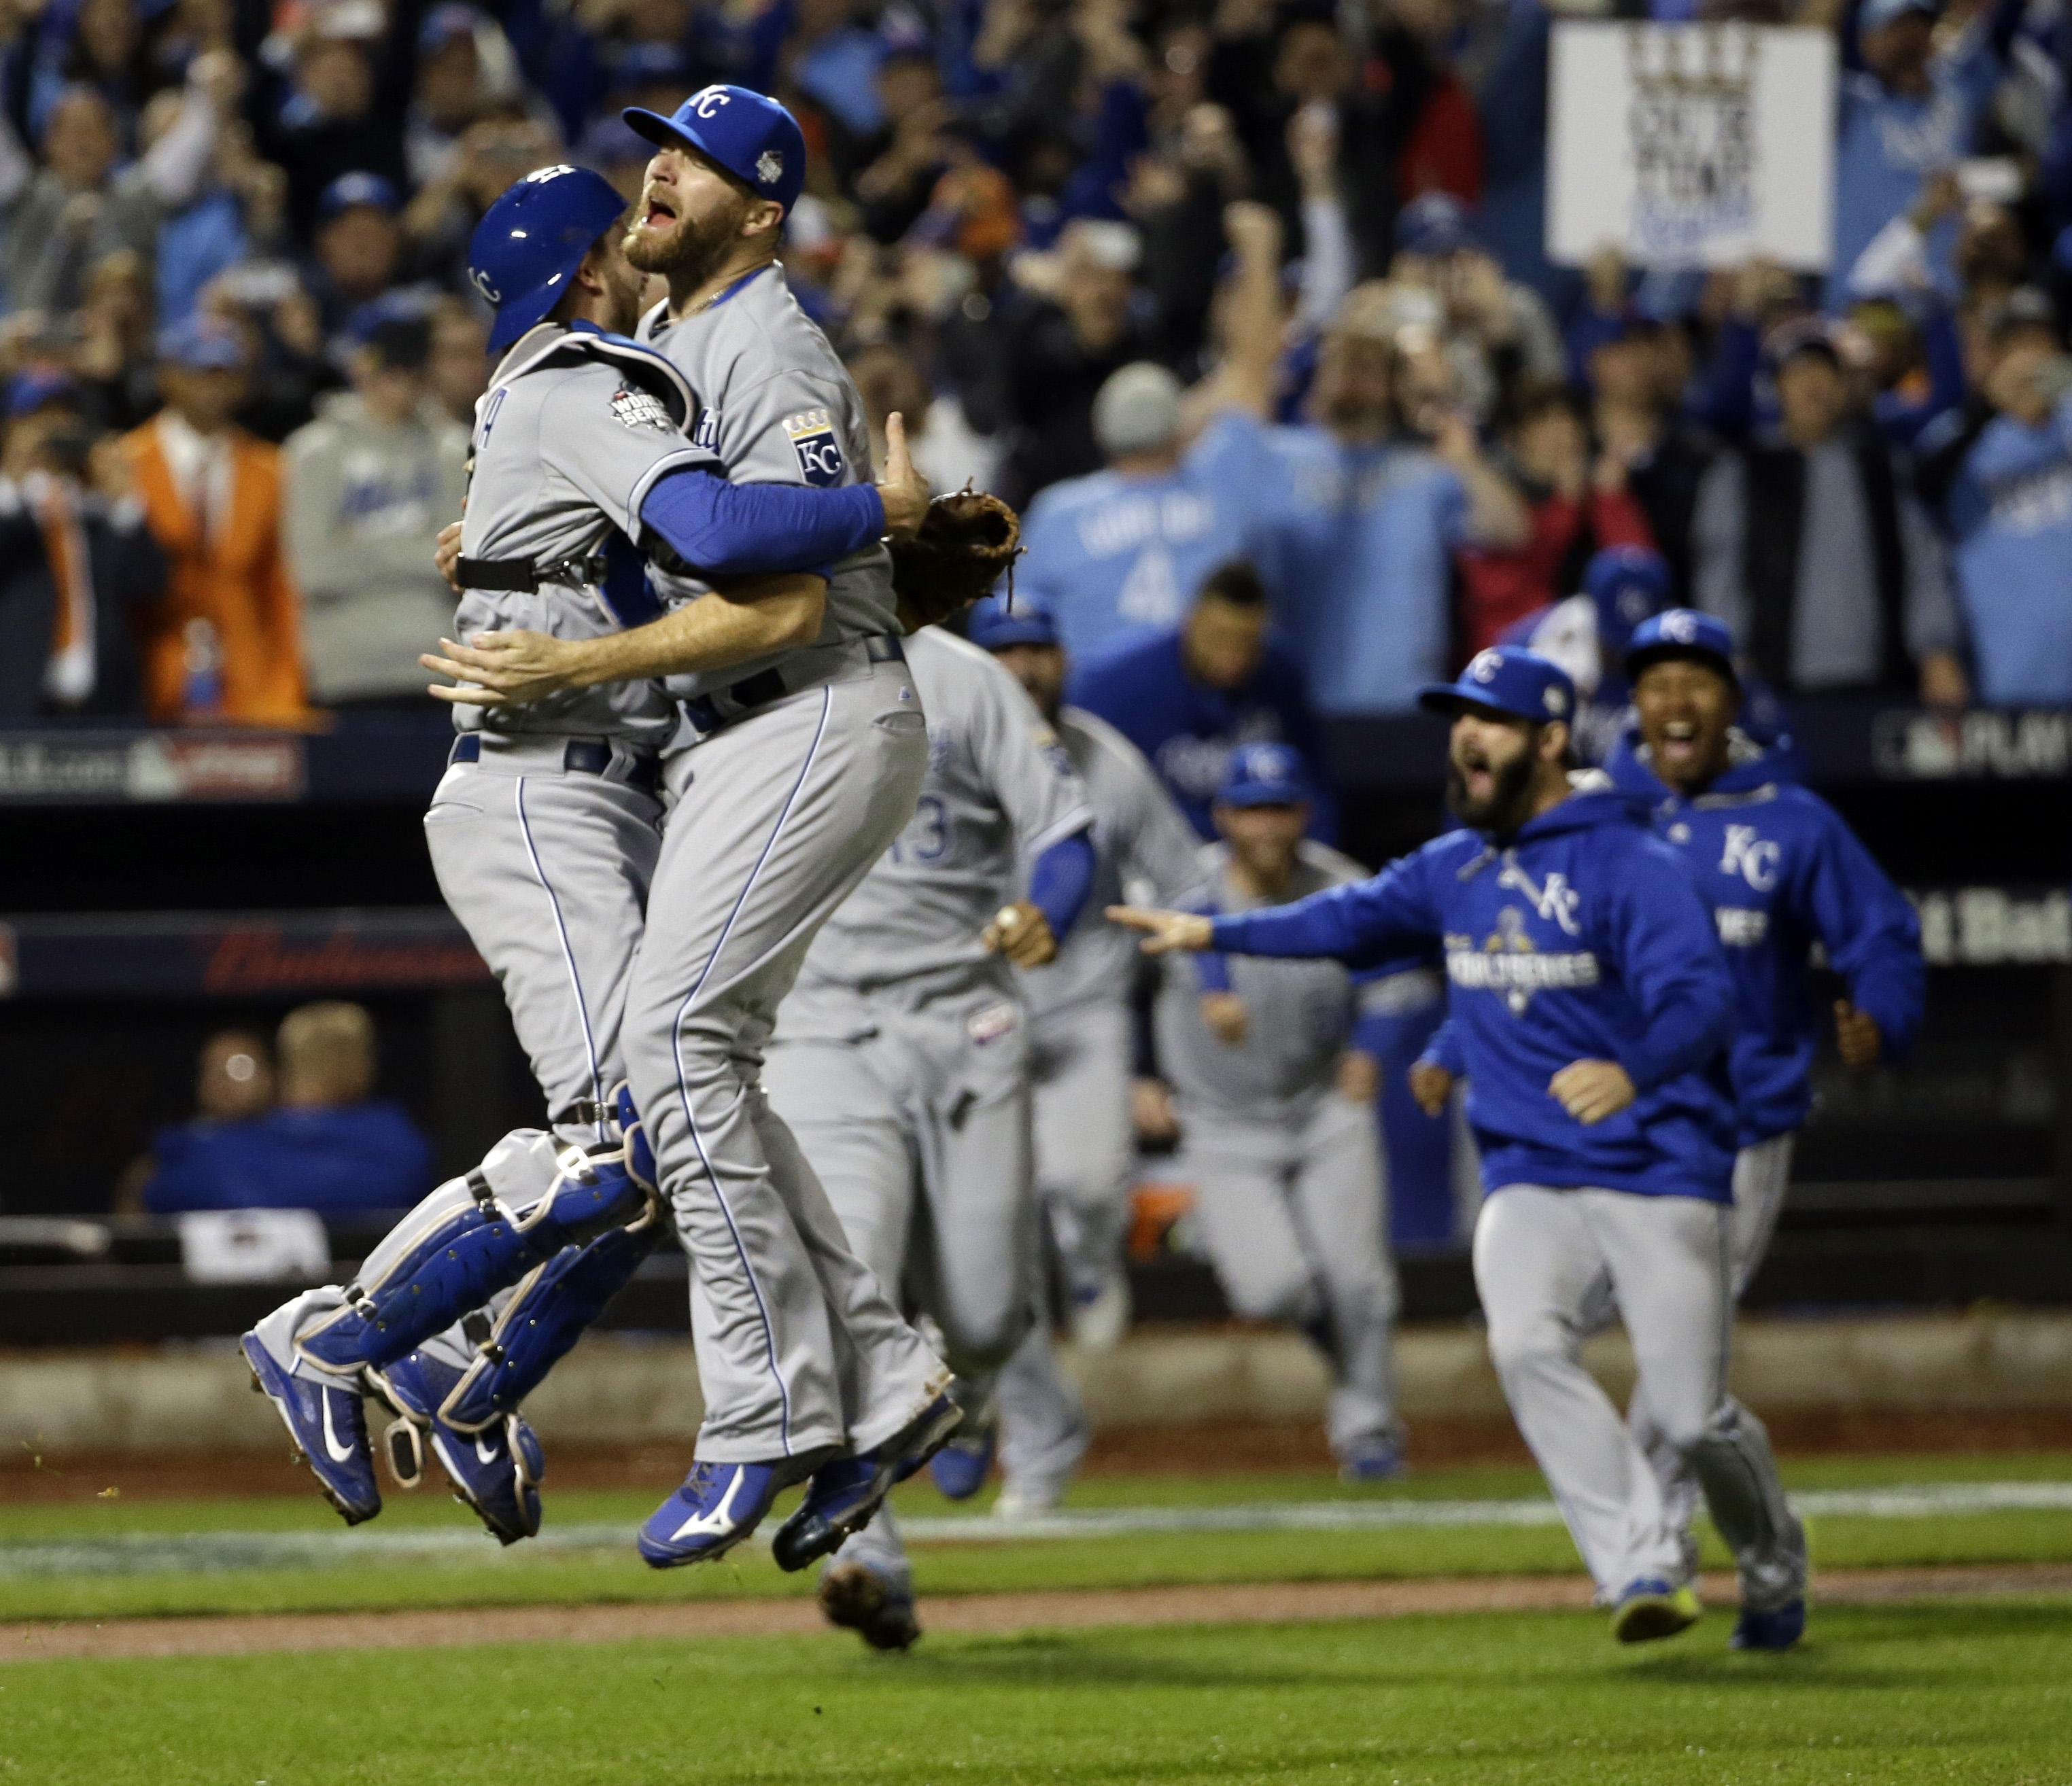 Even after World Series title, PECOTA projects Royals to